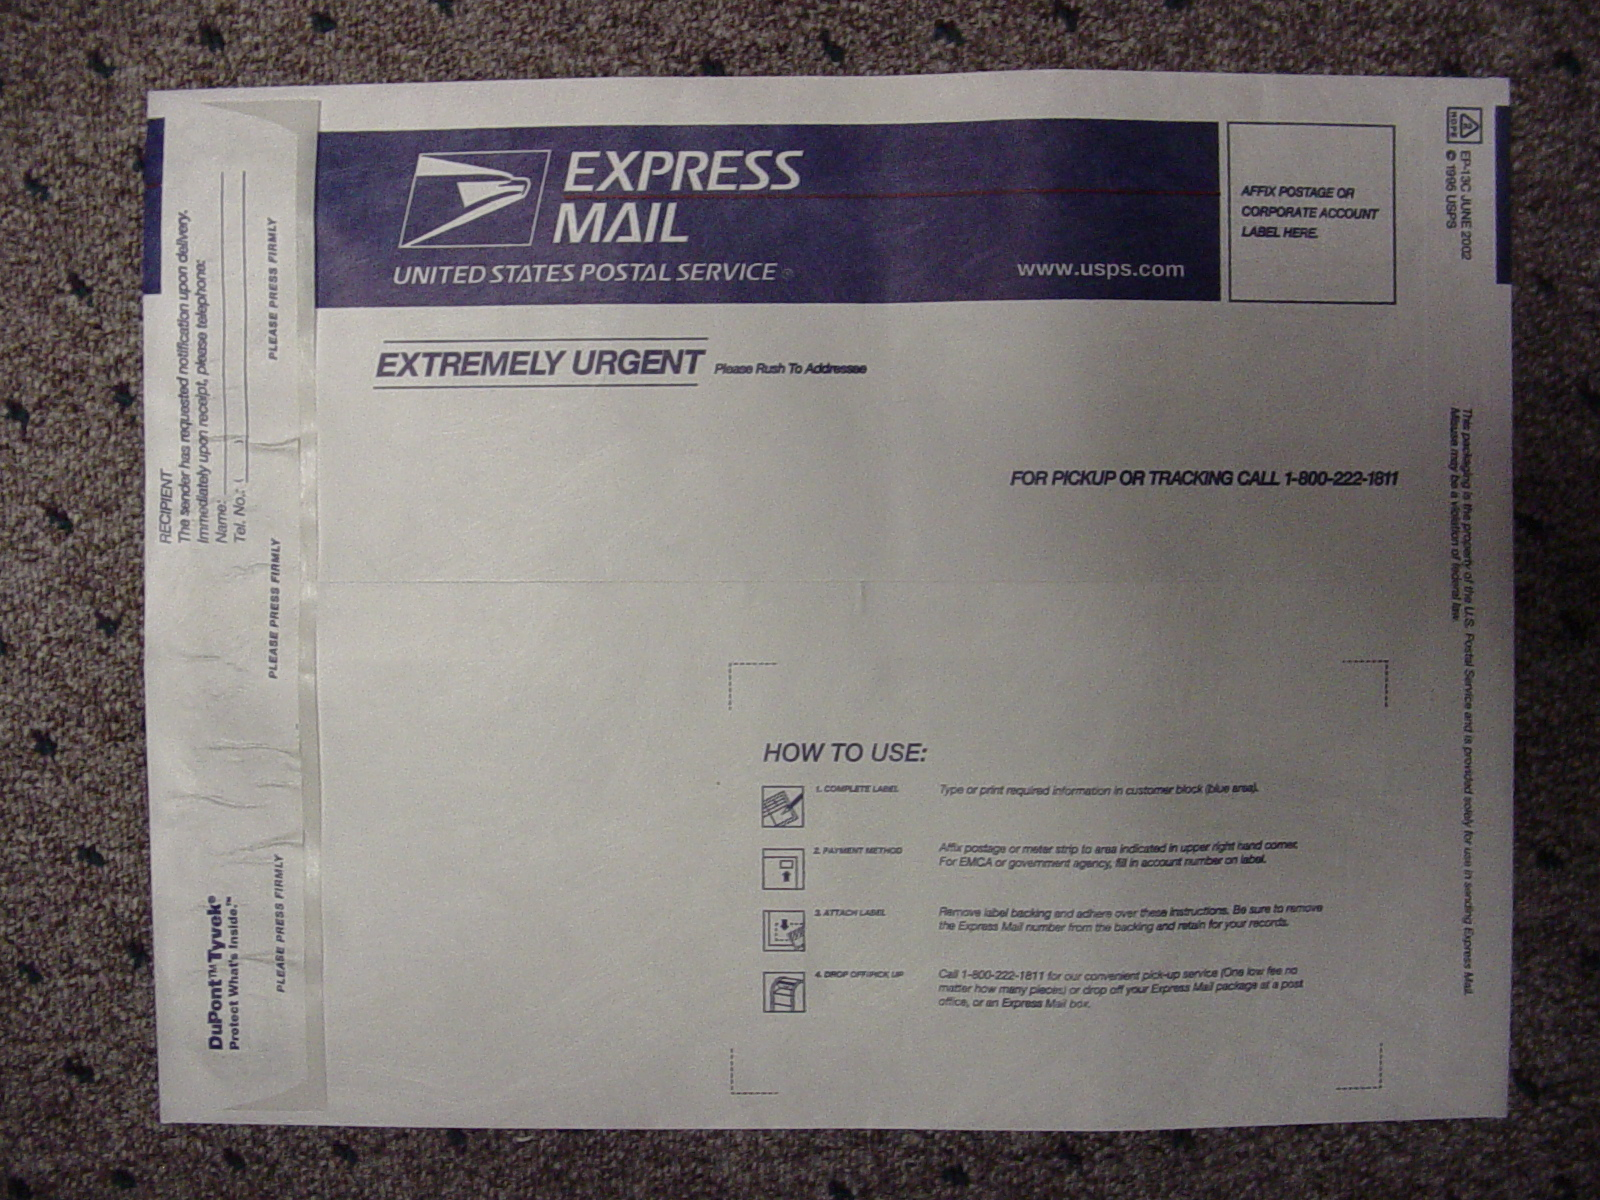 Former Tyvek envelope design for Express Mail